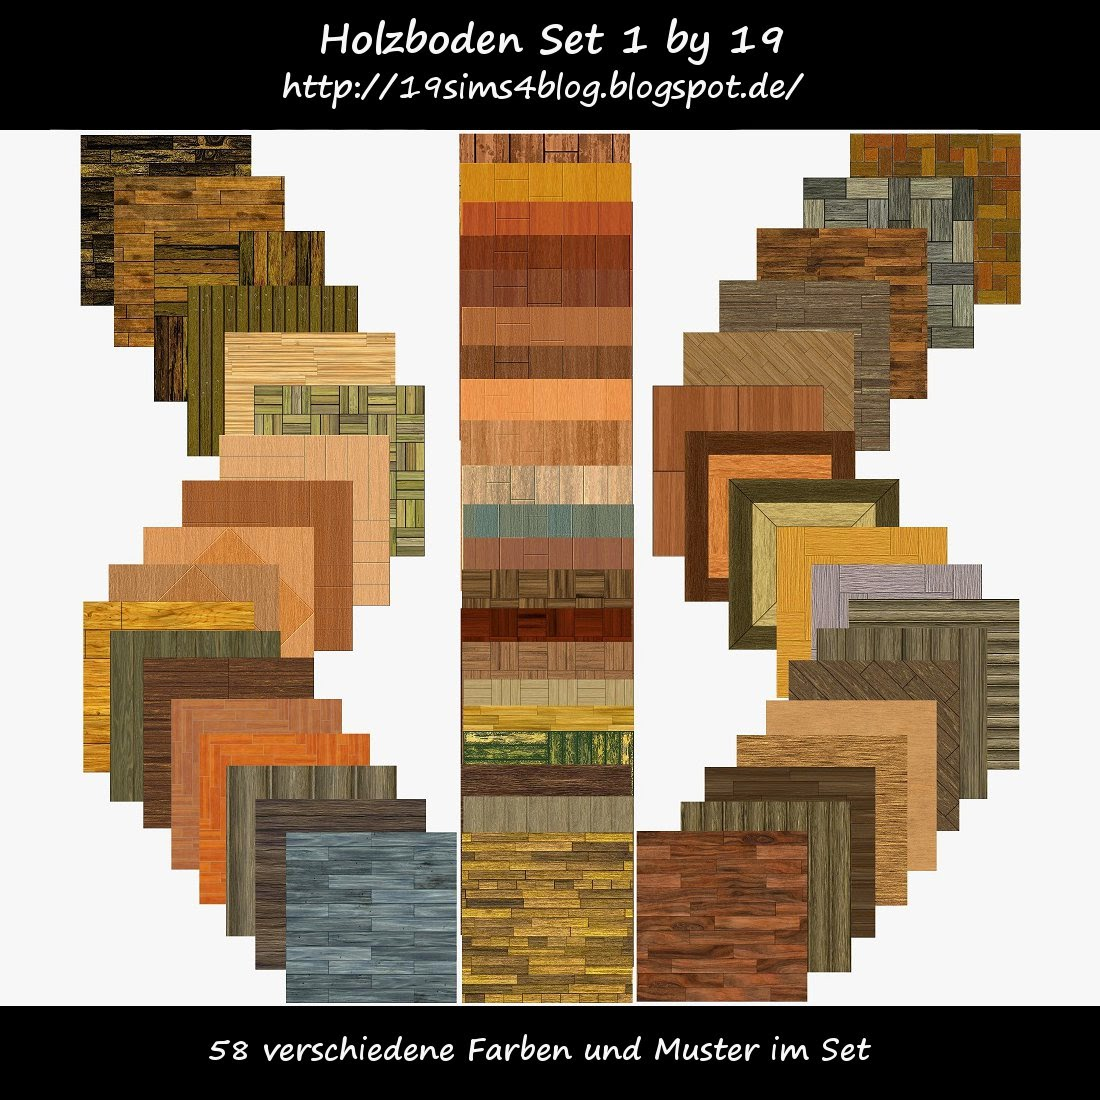 Holzboden Set 1 by 19 Sims 4 Blog